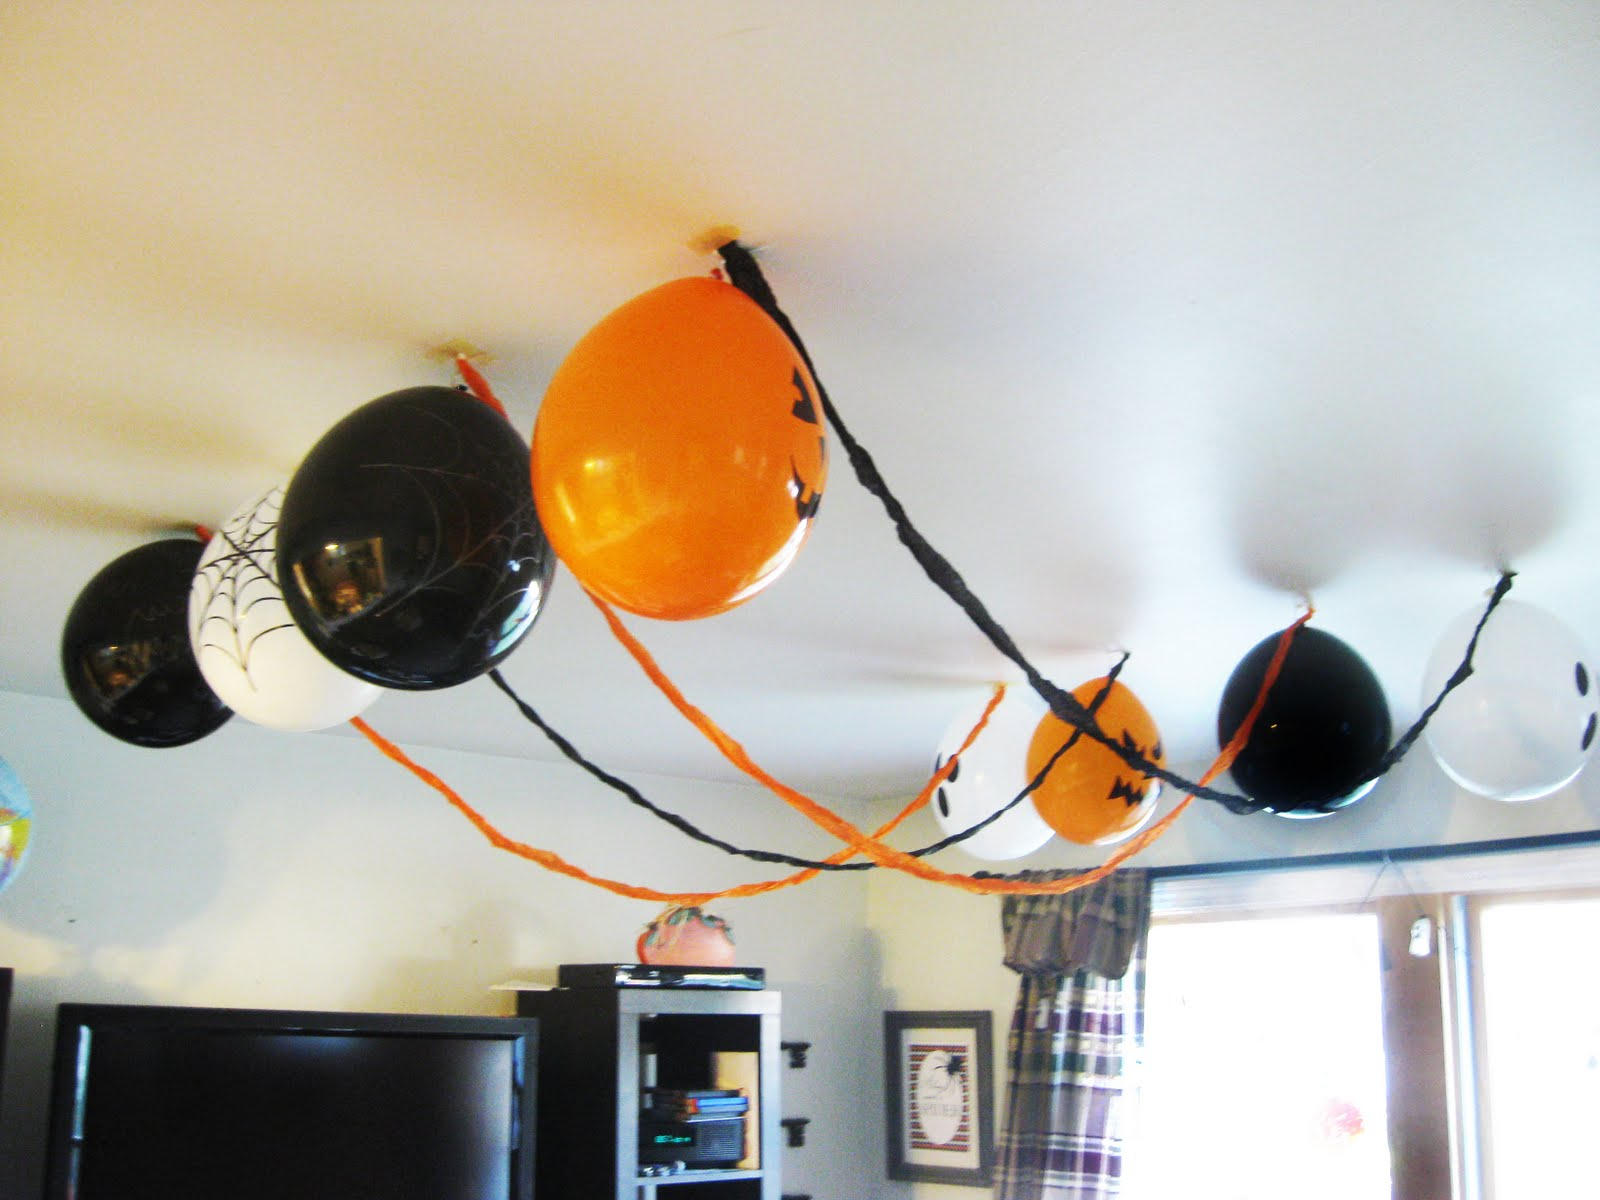 the ceiling decorations were also a cinch to make i just decorated plain balloons with spooky images using a sharpie i hung them upside down in rows and - Halloween Ceiling Decorations